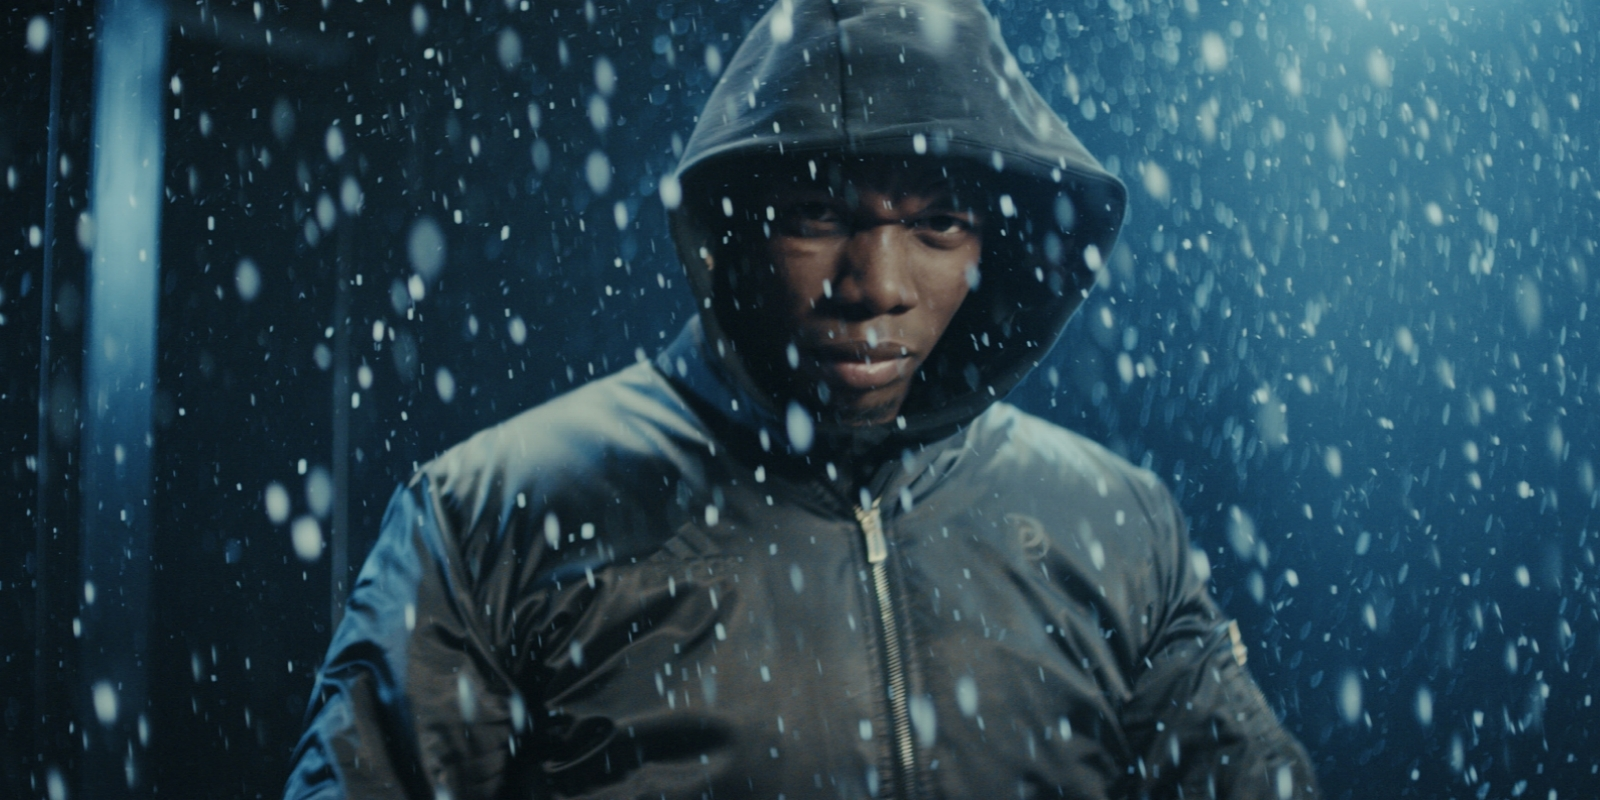 Adidas - Pogba Capsule Collection - Hero